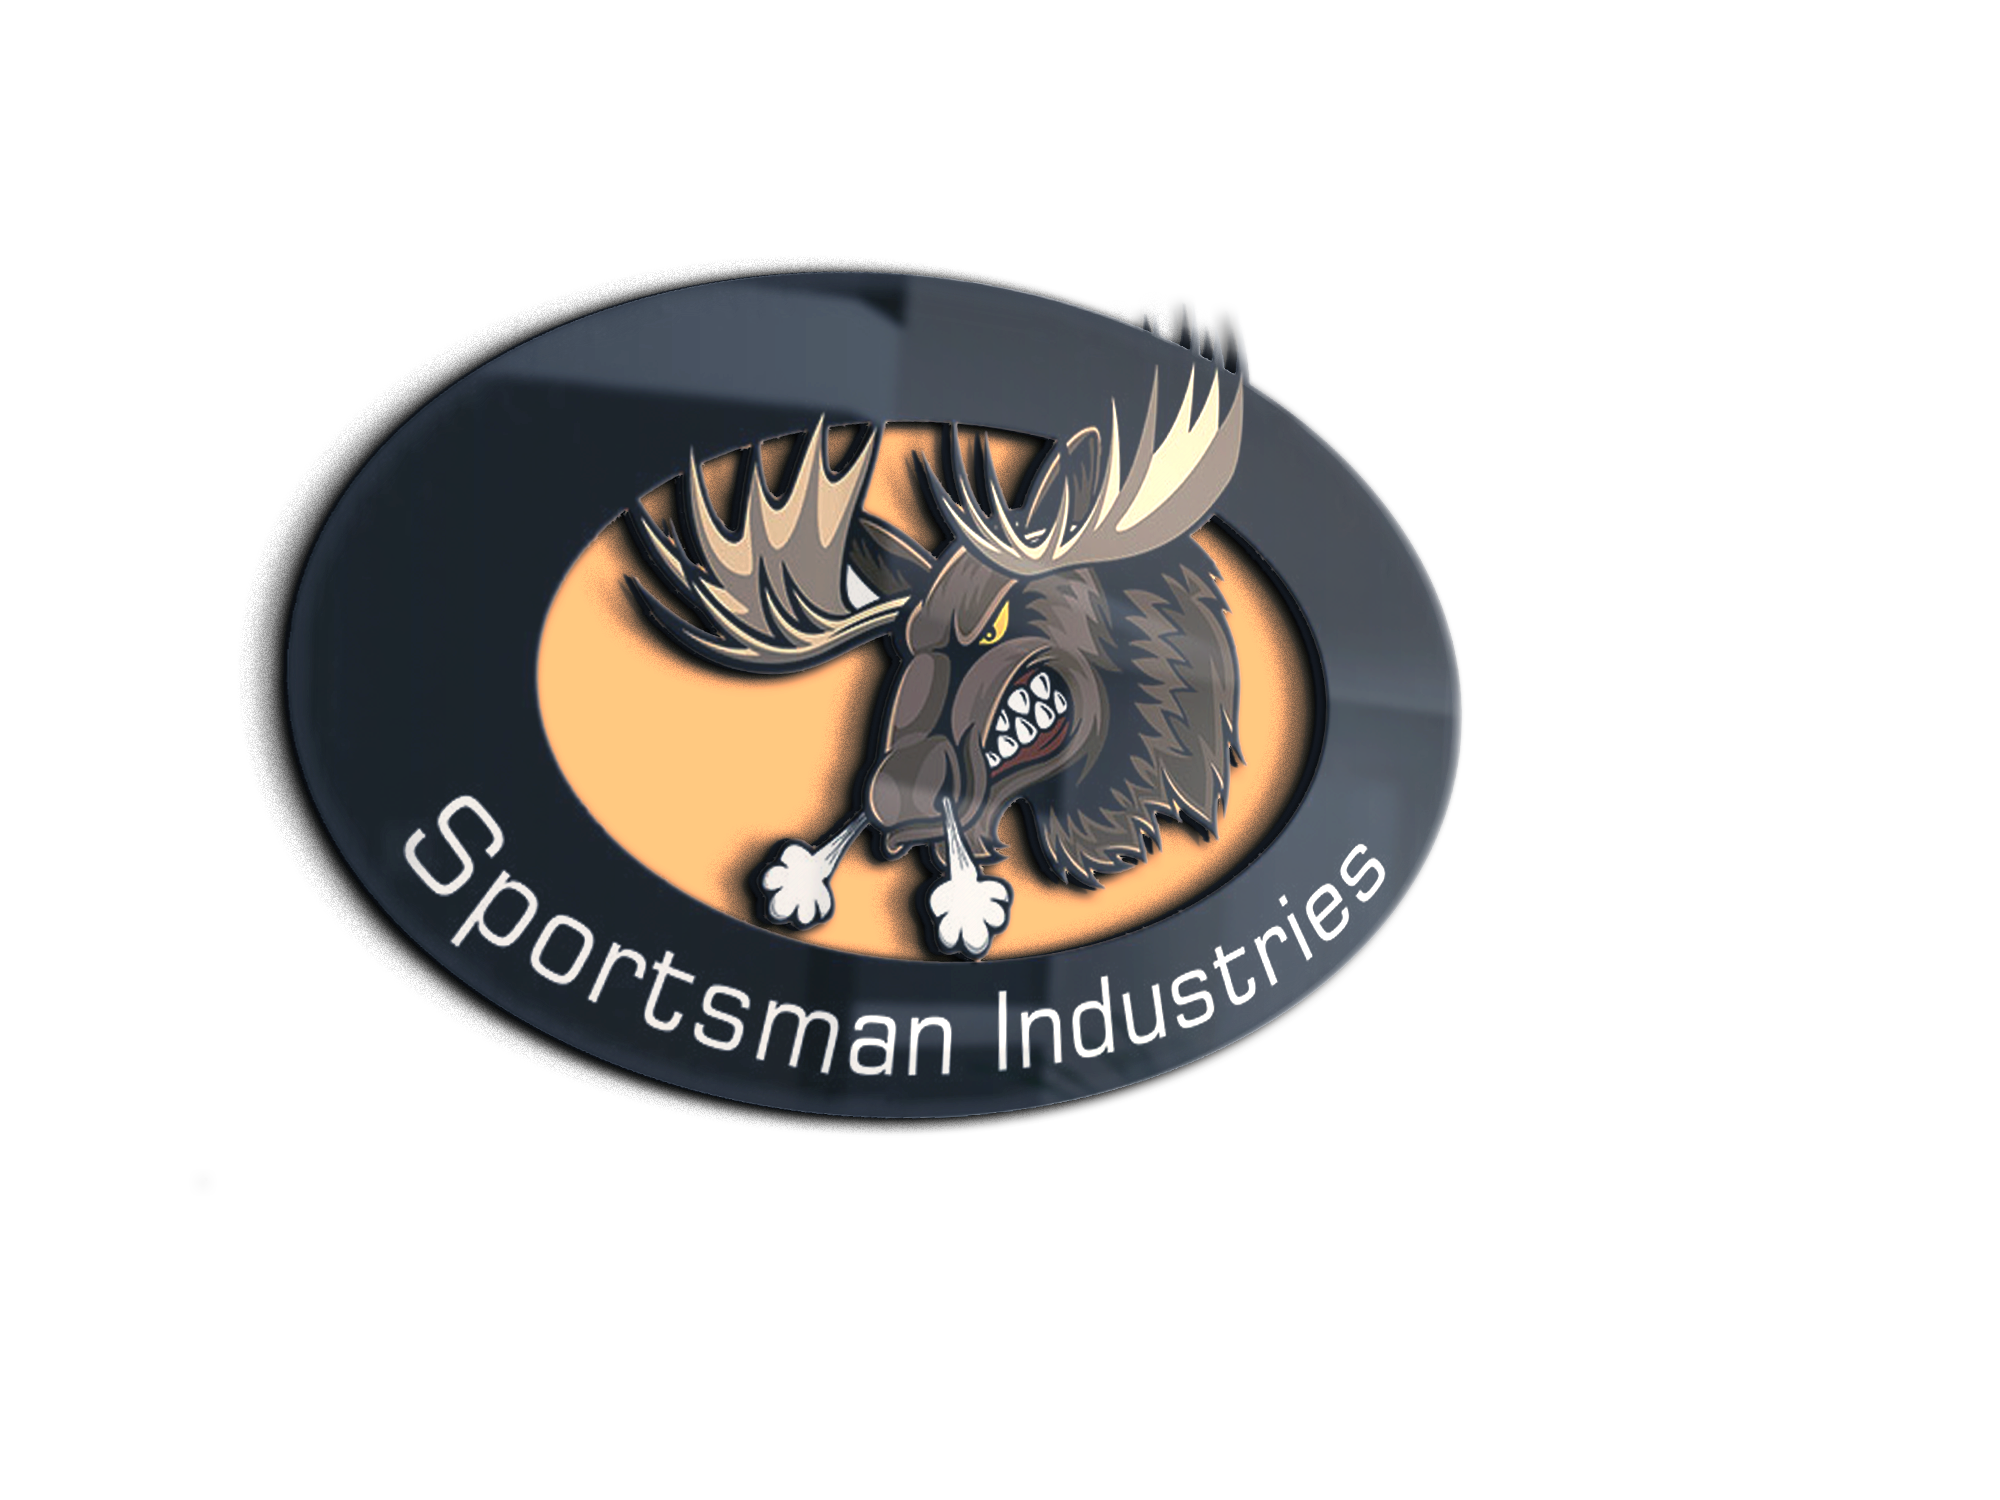 http://www.sportsman-industries.com